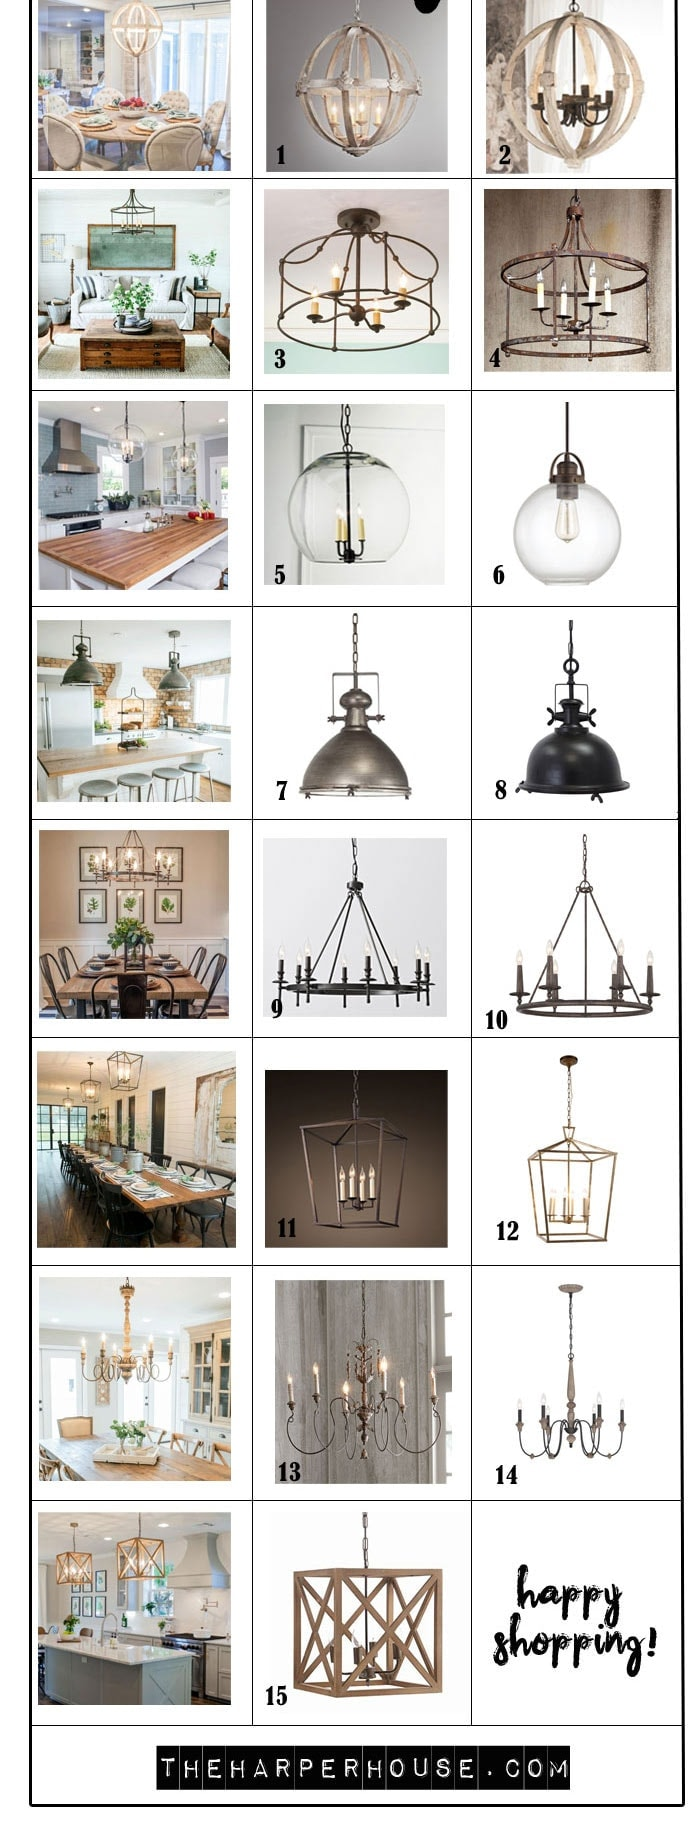 Restoration Hardware Vintage French Farmhouse Sconce Favorite Light Fixtures For Fixer Upper Style The Harper House